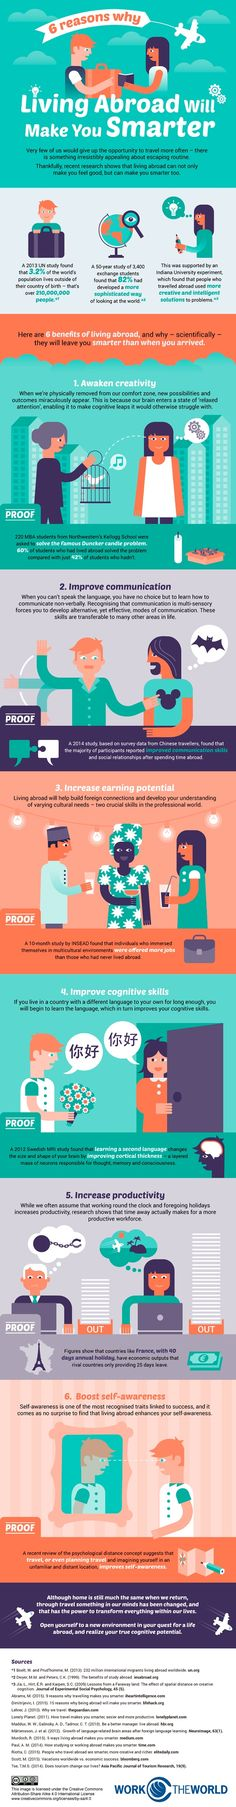 Infographic: Six Reasons Why Living Abroad Will Make You Smarter - DesignTAXI.com